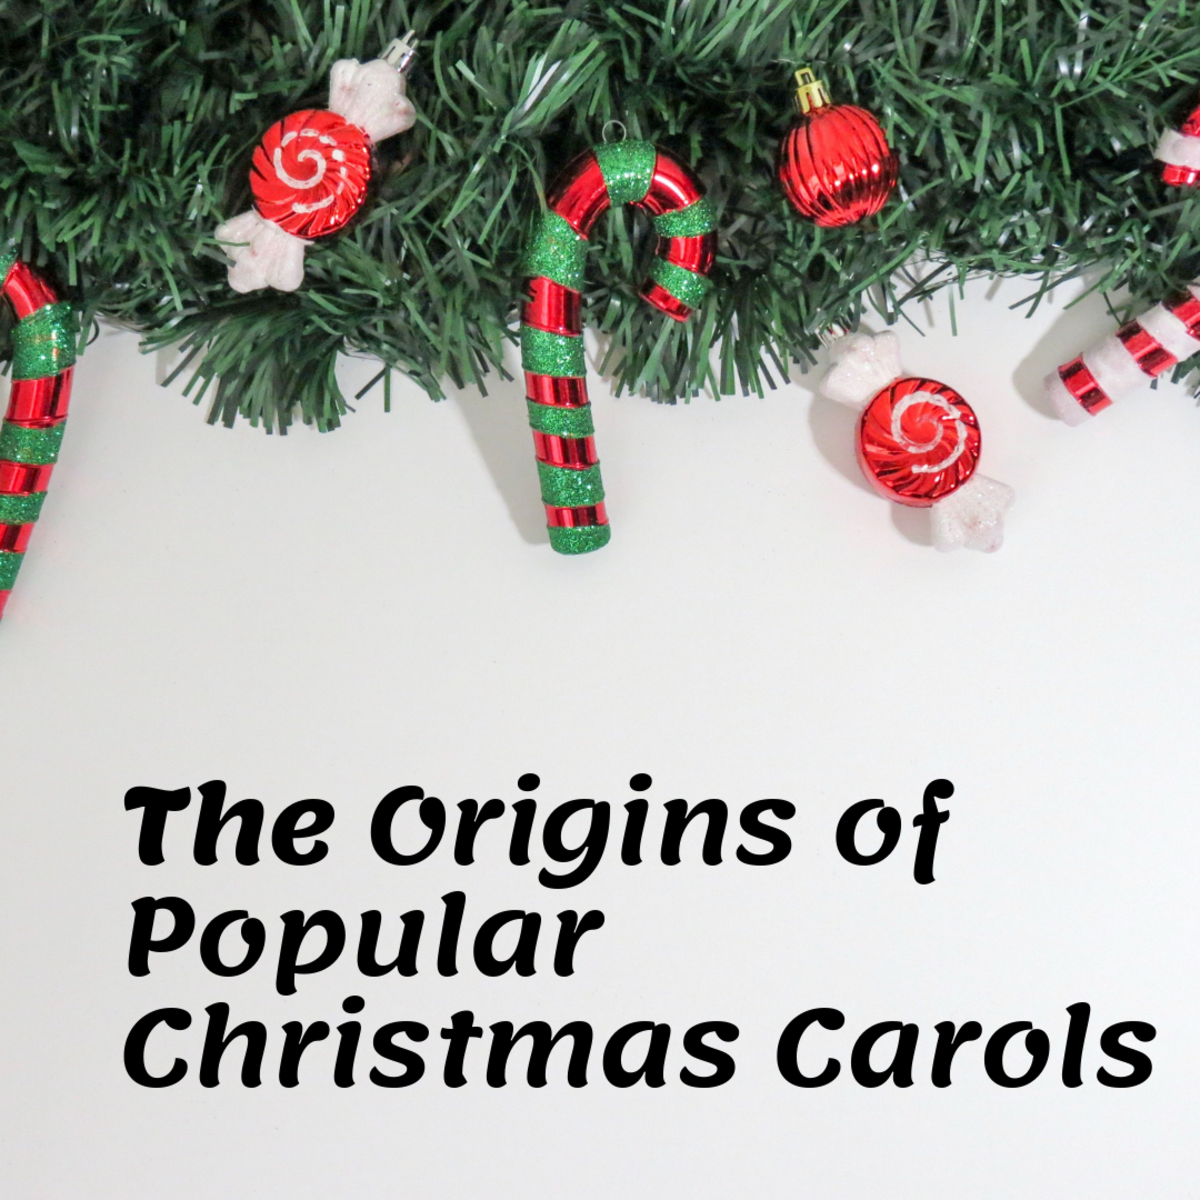 Origins of Popular Christmas Carols